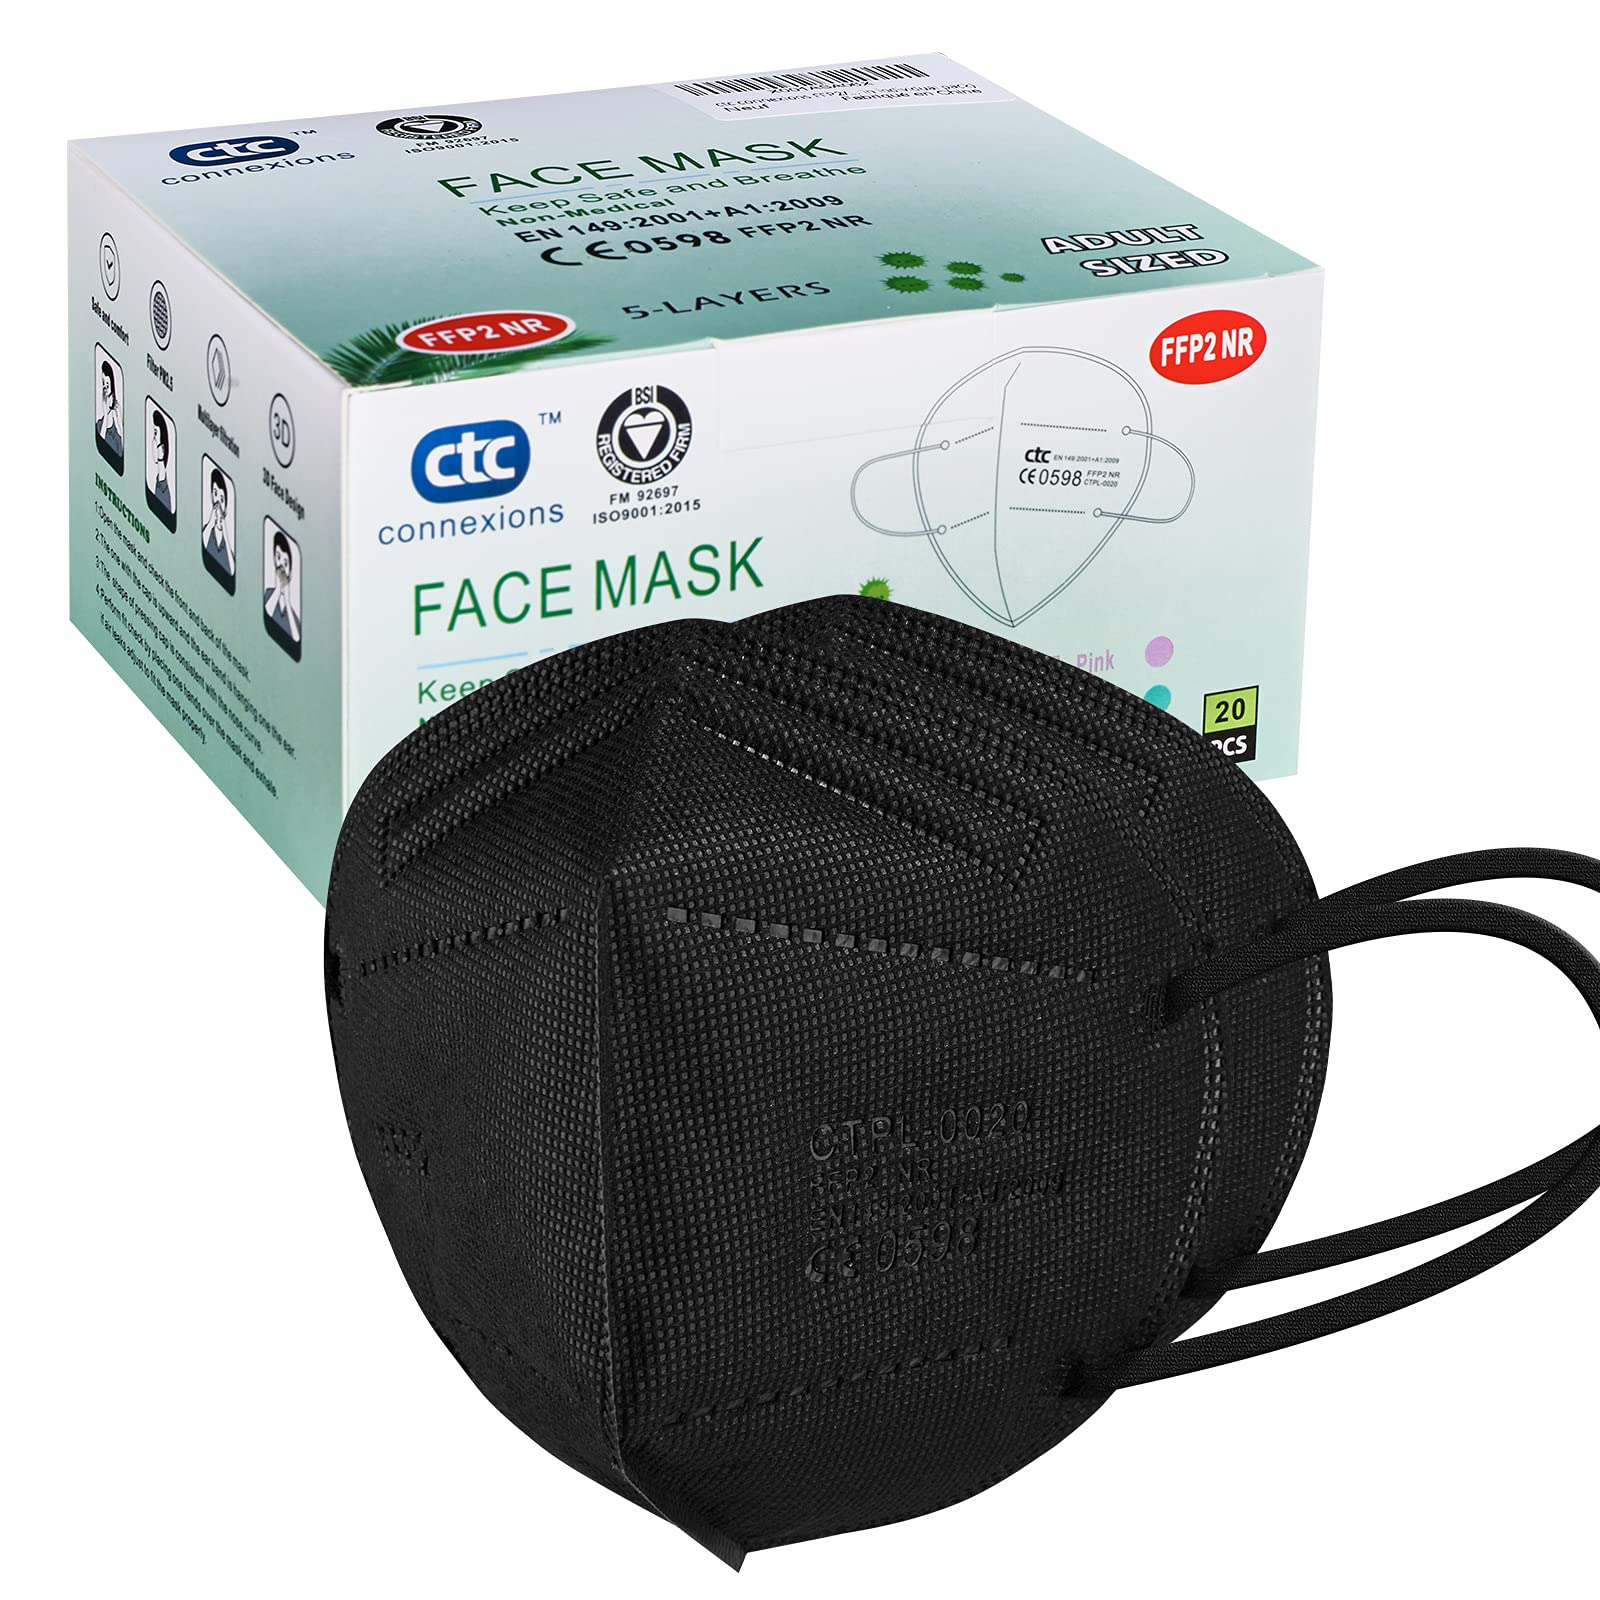 CTPL-0020 Black FFP2 Respirator Face Mask with CE0598 by Connexions Technology